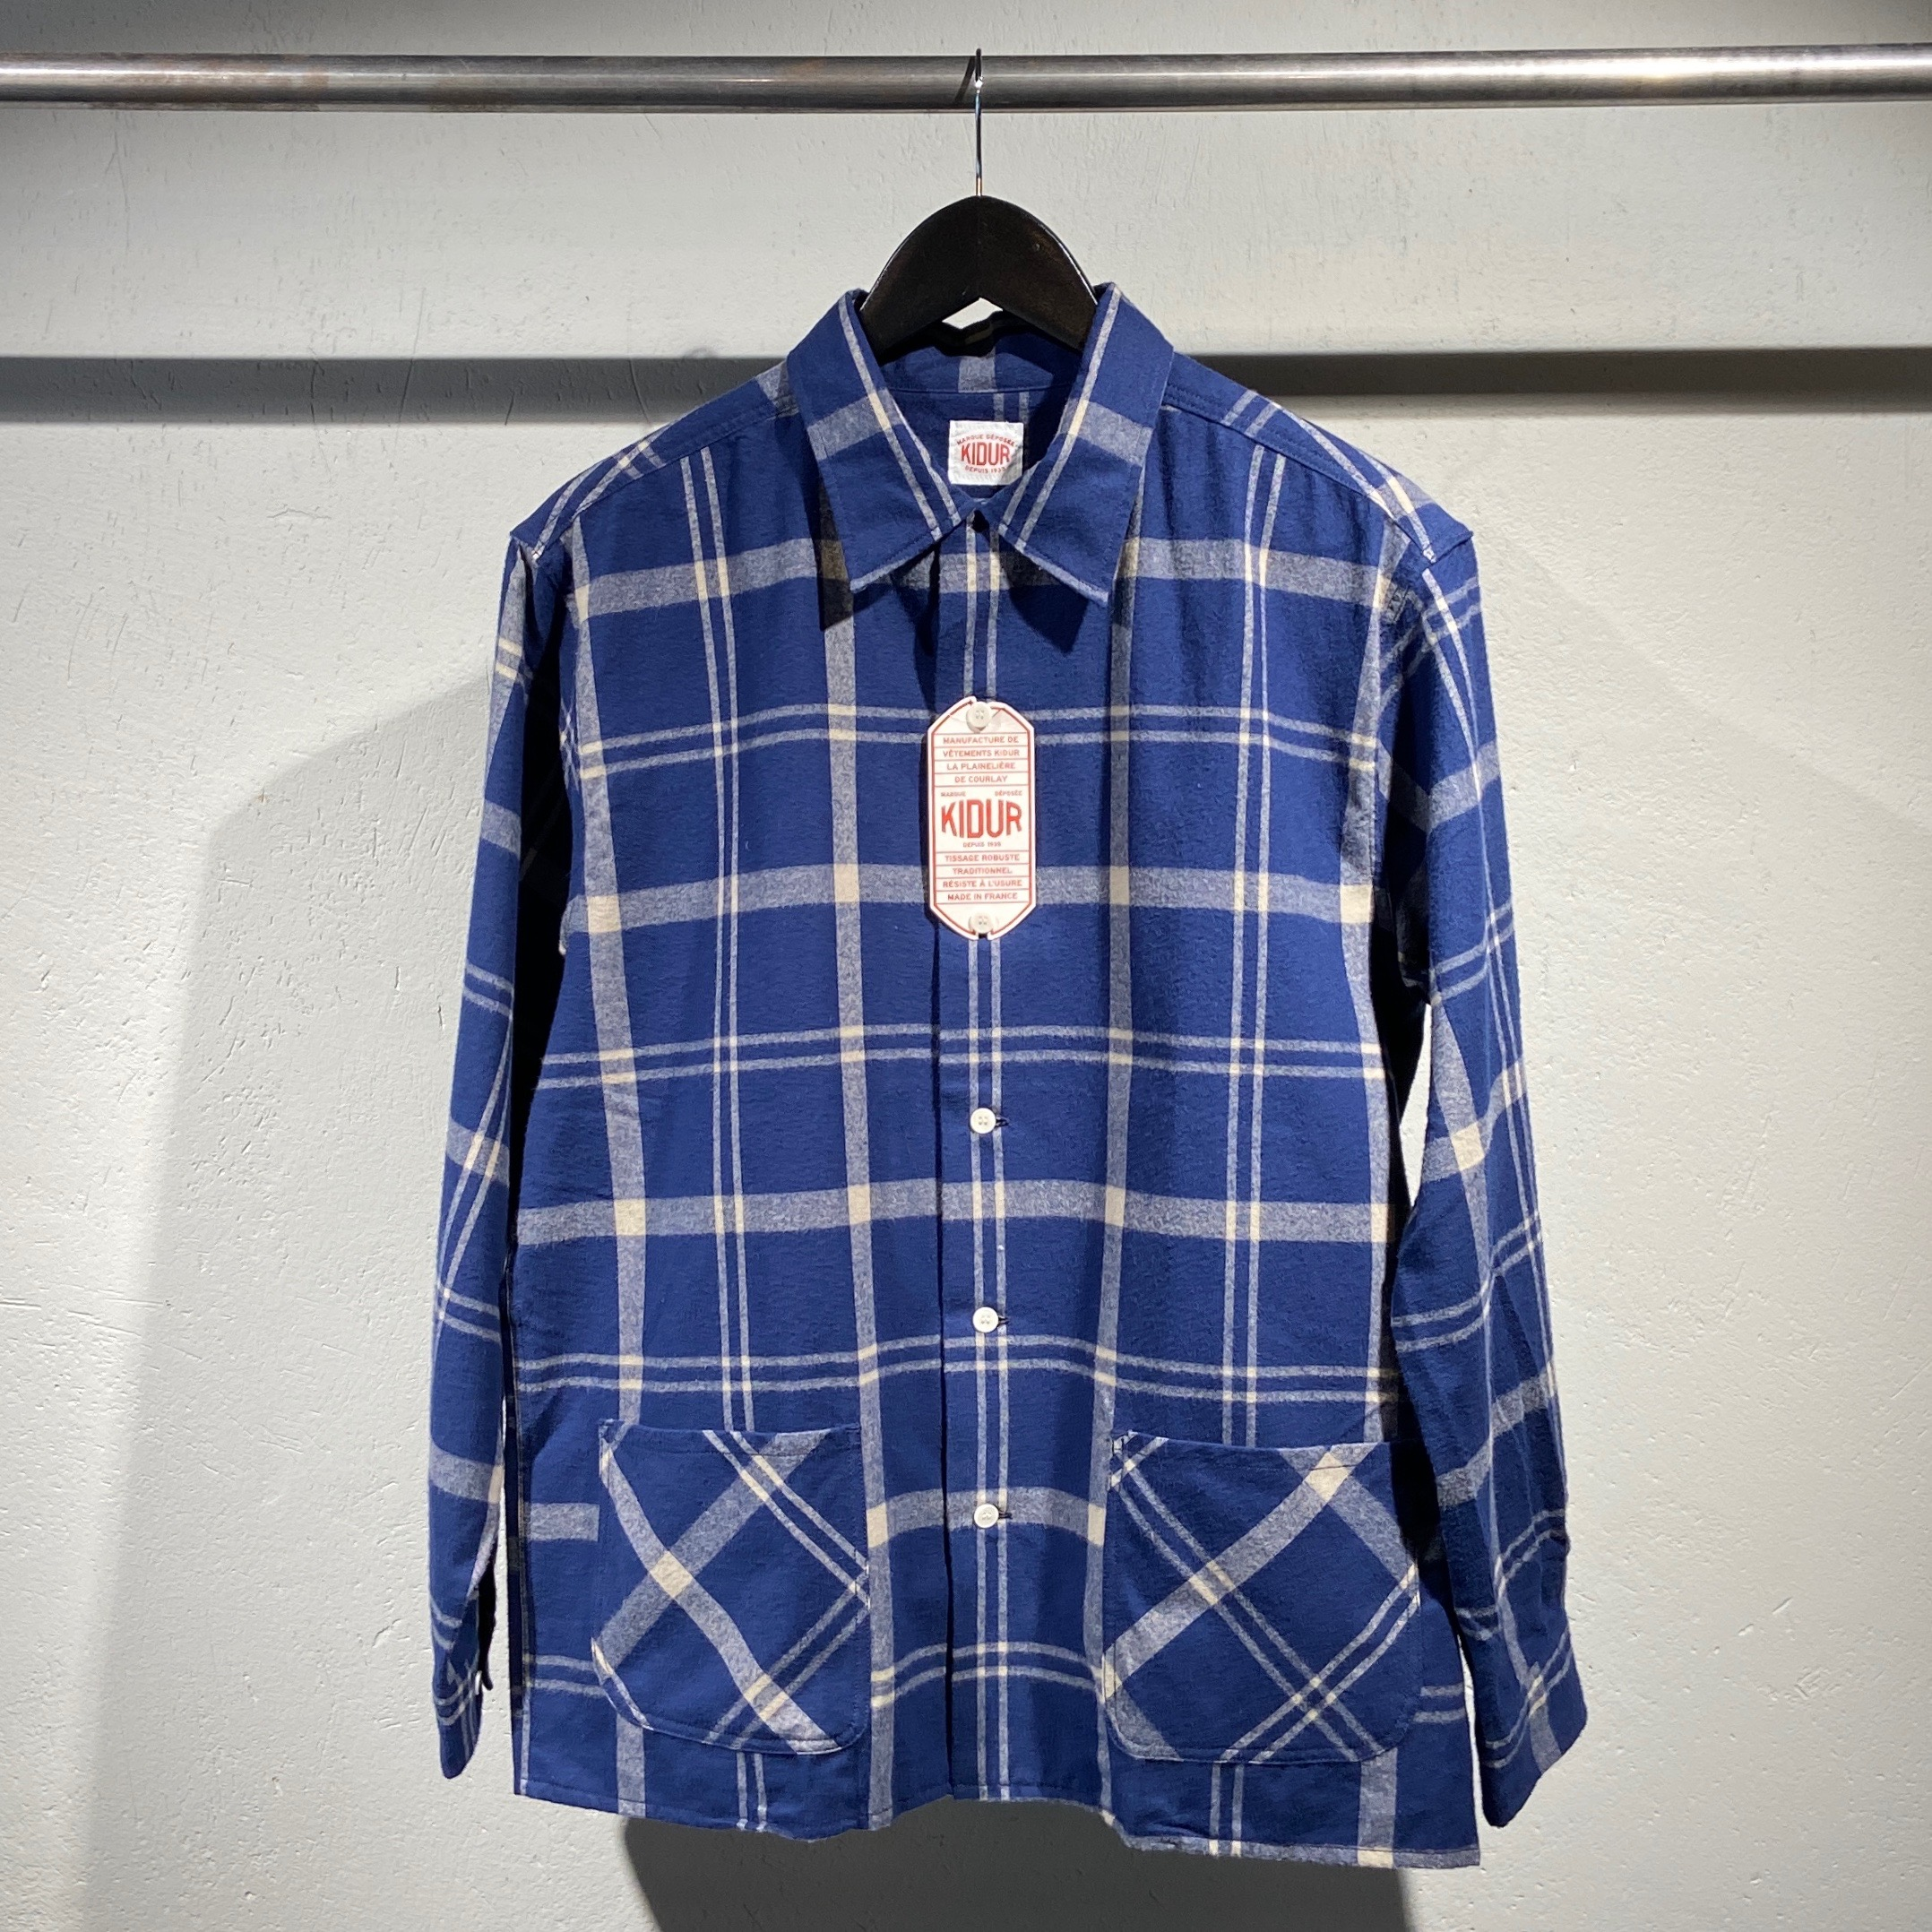 Kidur Flannel Camp Shirt